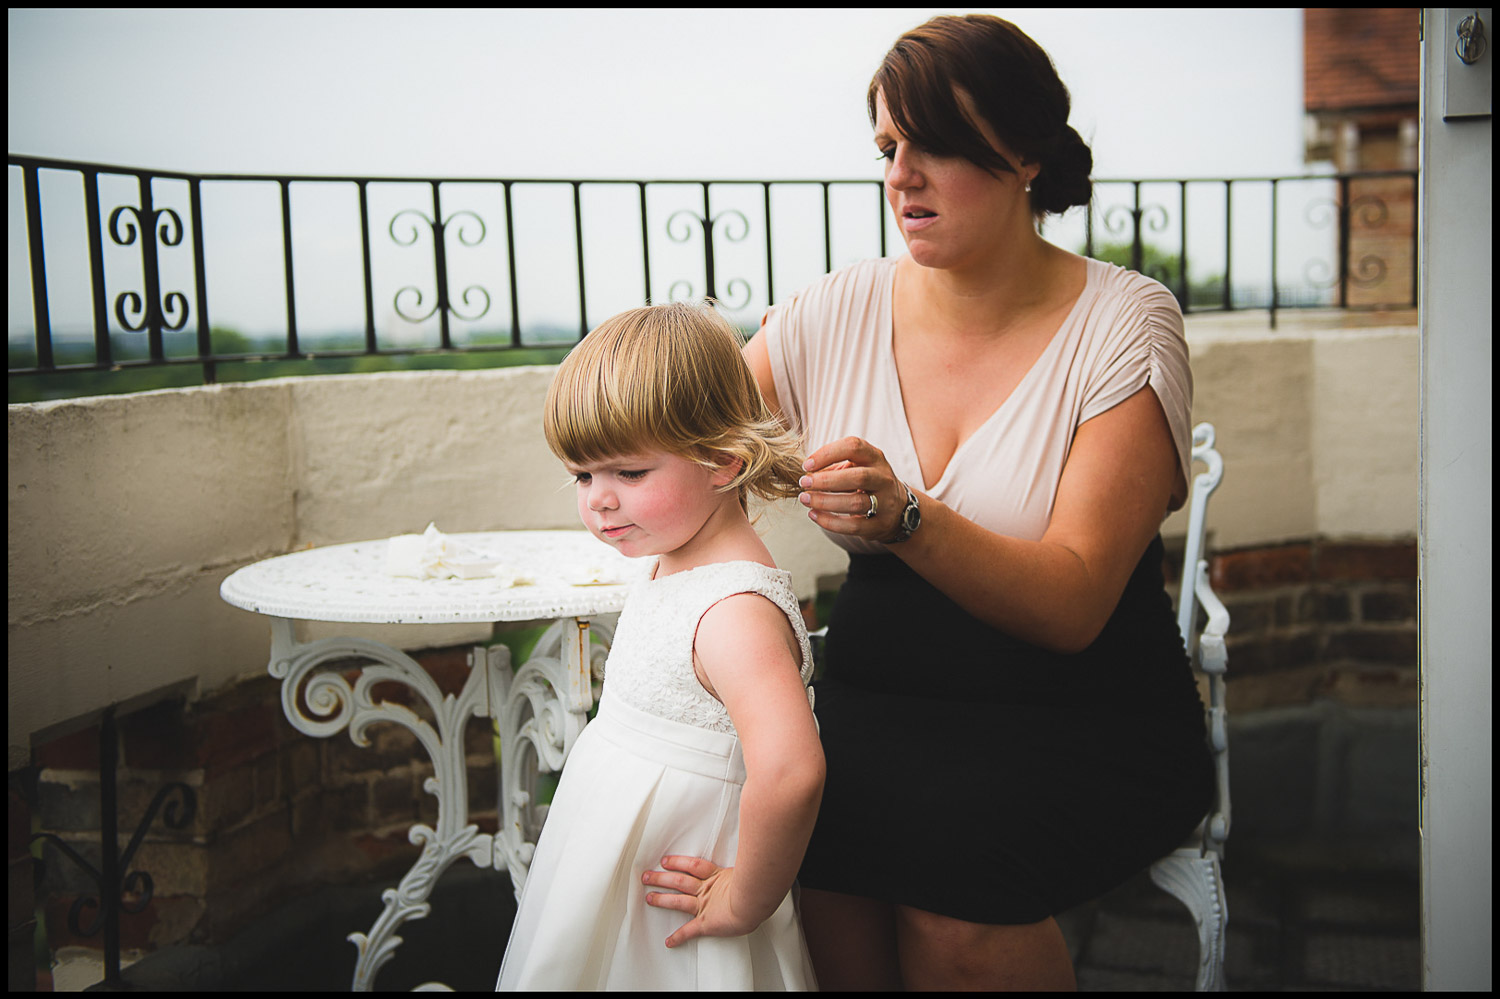 reportage-wedding-photographer-london-twickenham.jpg